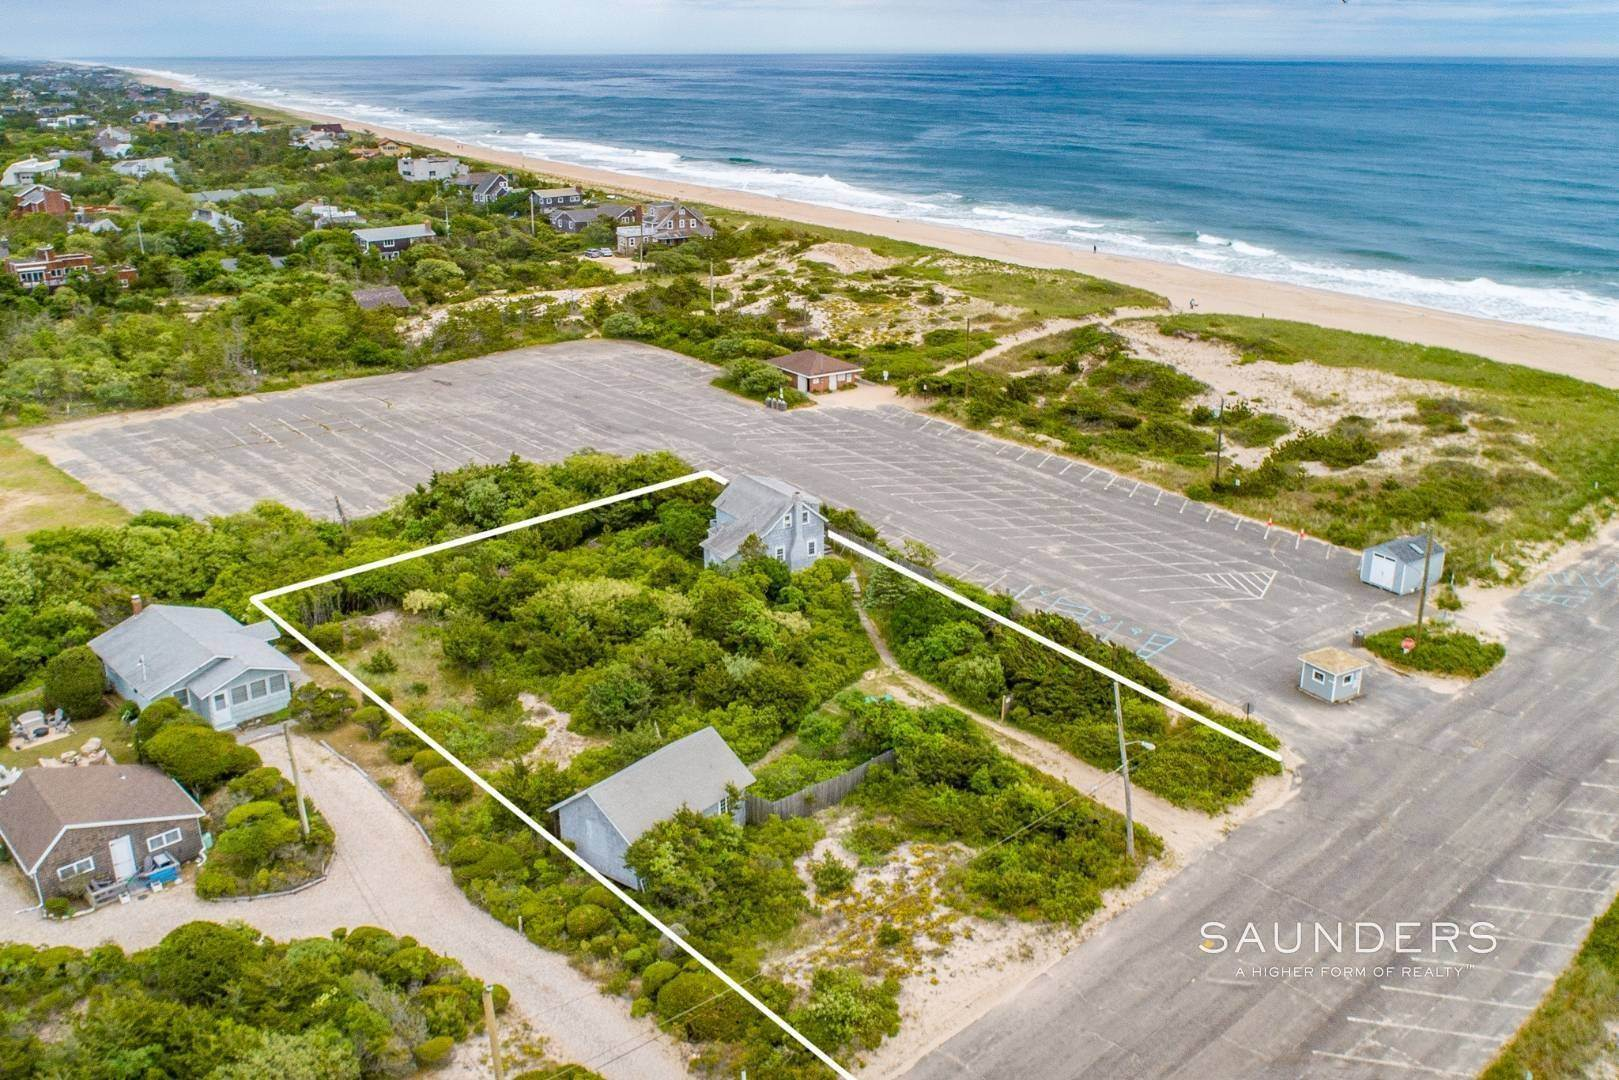 Land at Amagansett Opportunity Across From The Beach 175 Atlantic Avenue, Amagansett, East Hampton Town, NY 11930